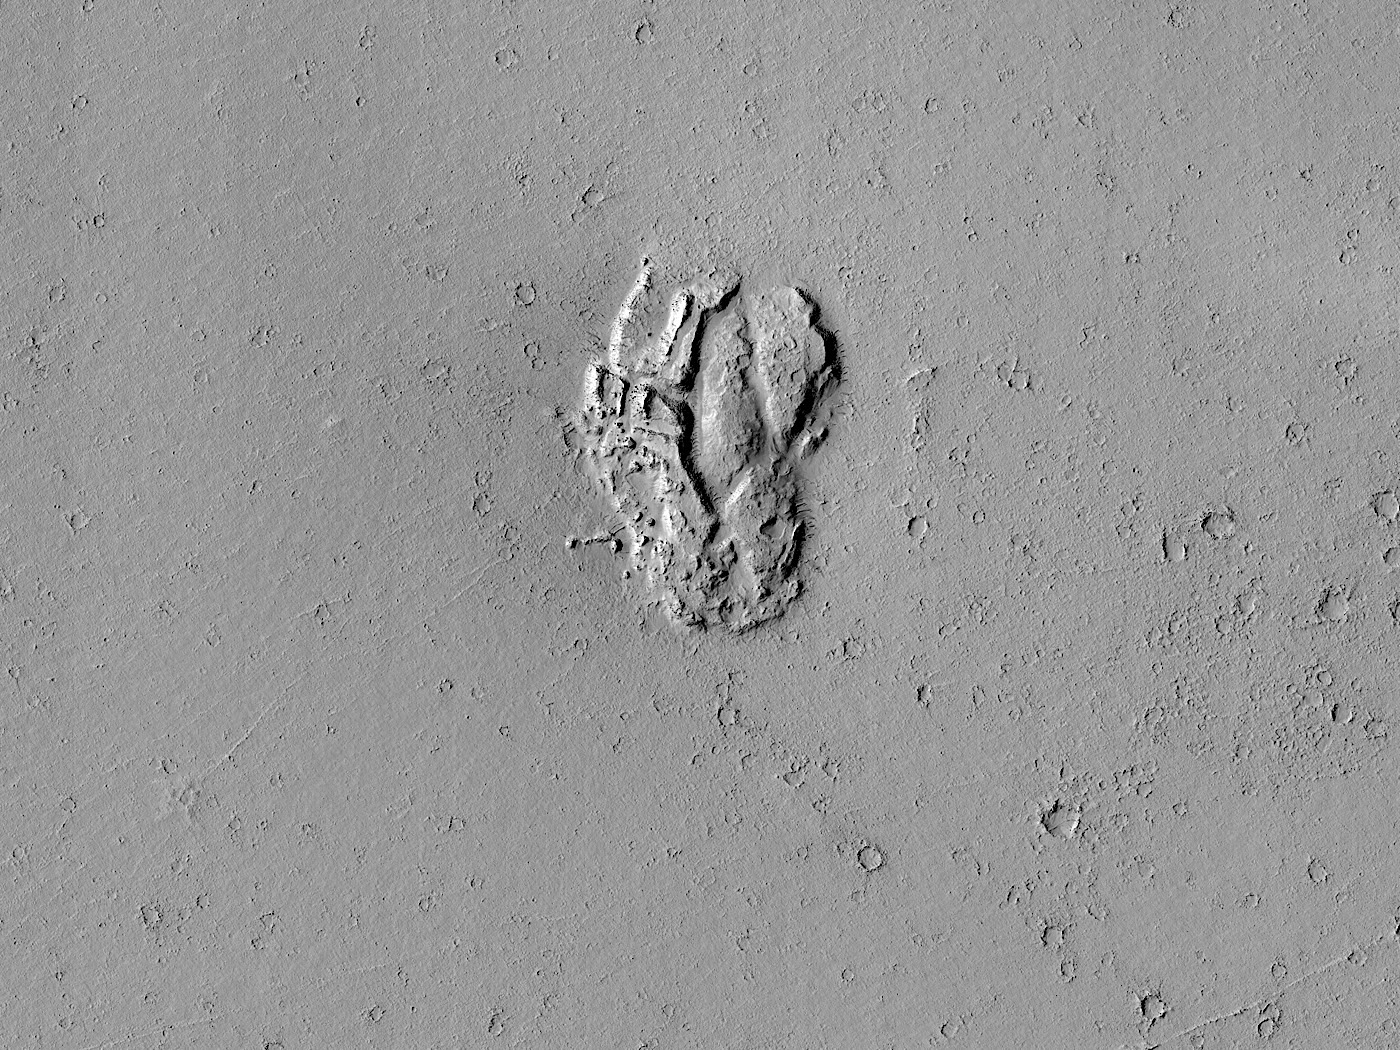 rock-formation-on-mars-looks-like-a-lonely-dome-lost-near-a-weirdly-shaped-crater